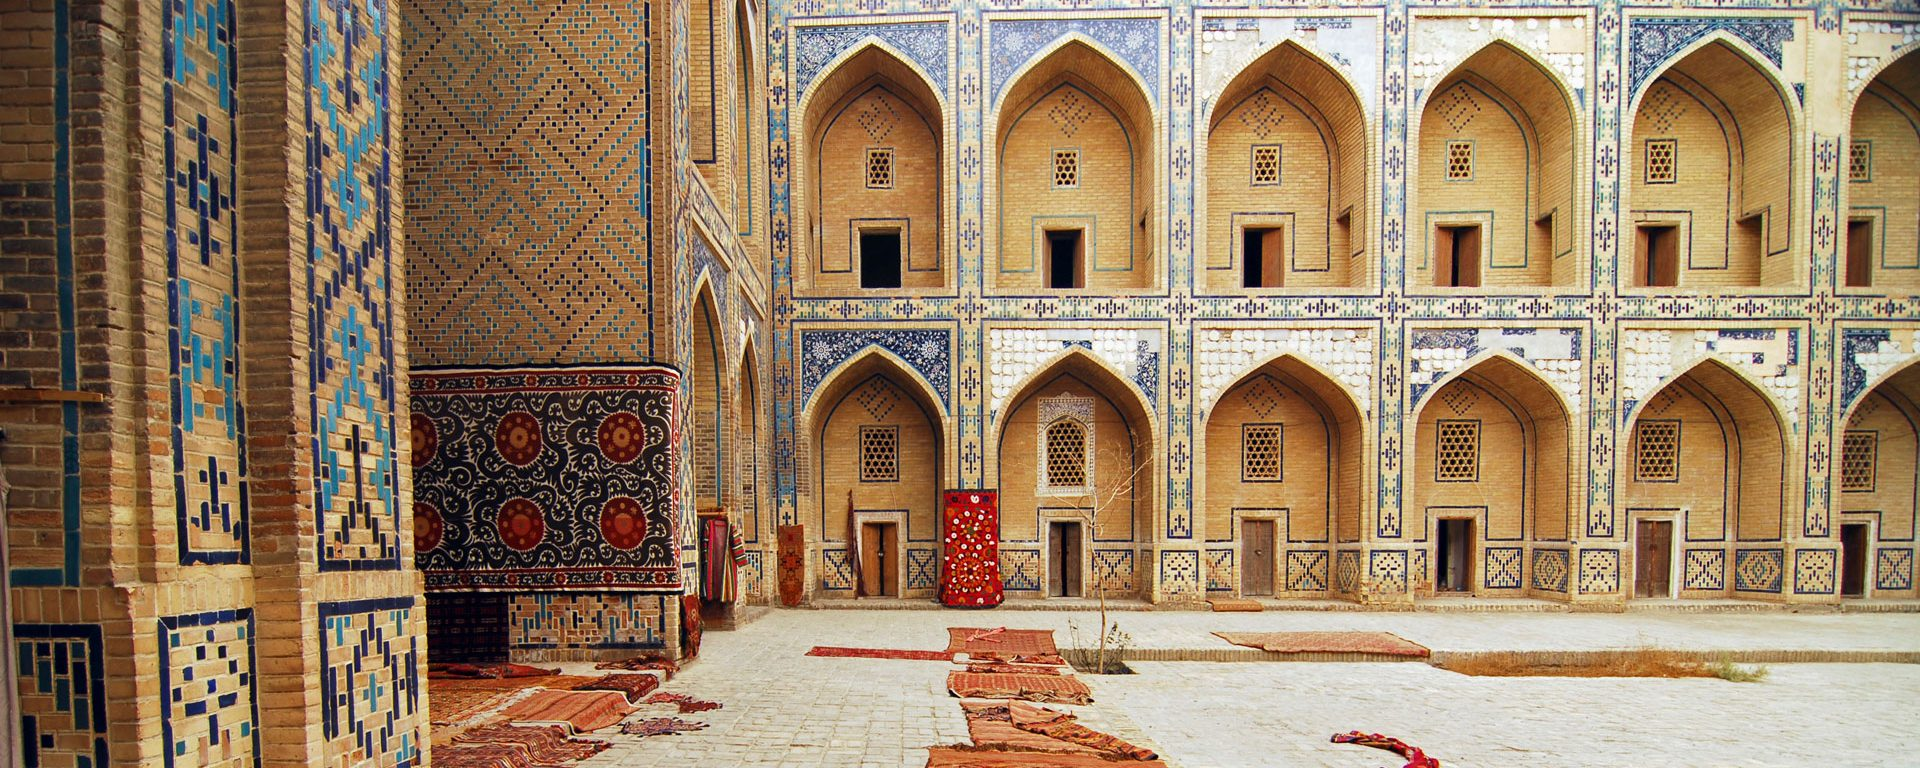 Uzbekistan, Bukhara, arched entrance in a row of historic buildings with carpets lying on courtyard.